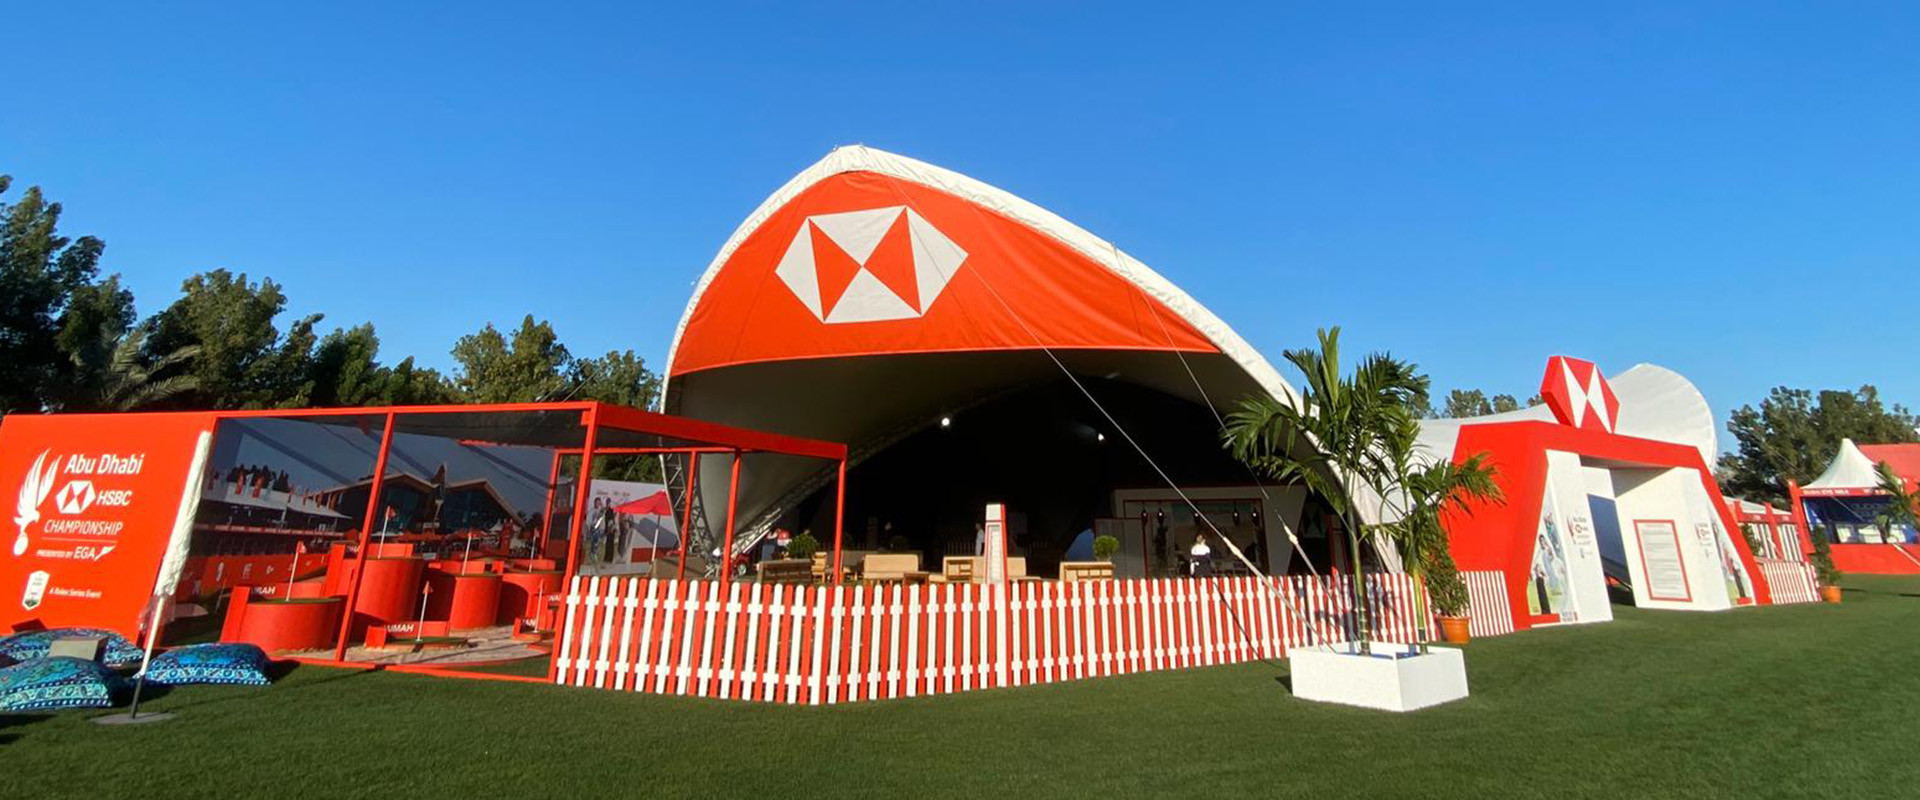 WA3F_HSBC Fan Village_002.jpg